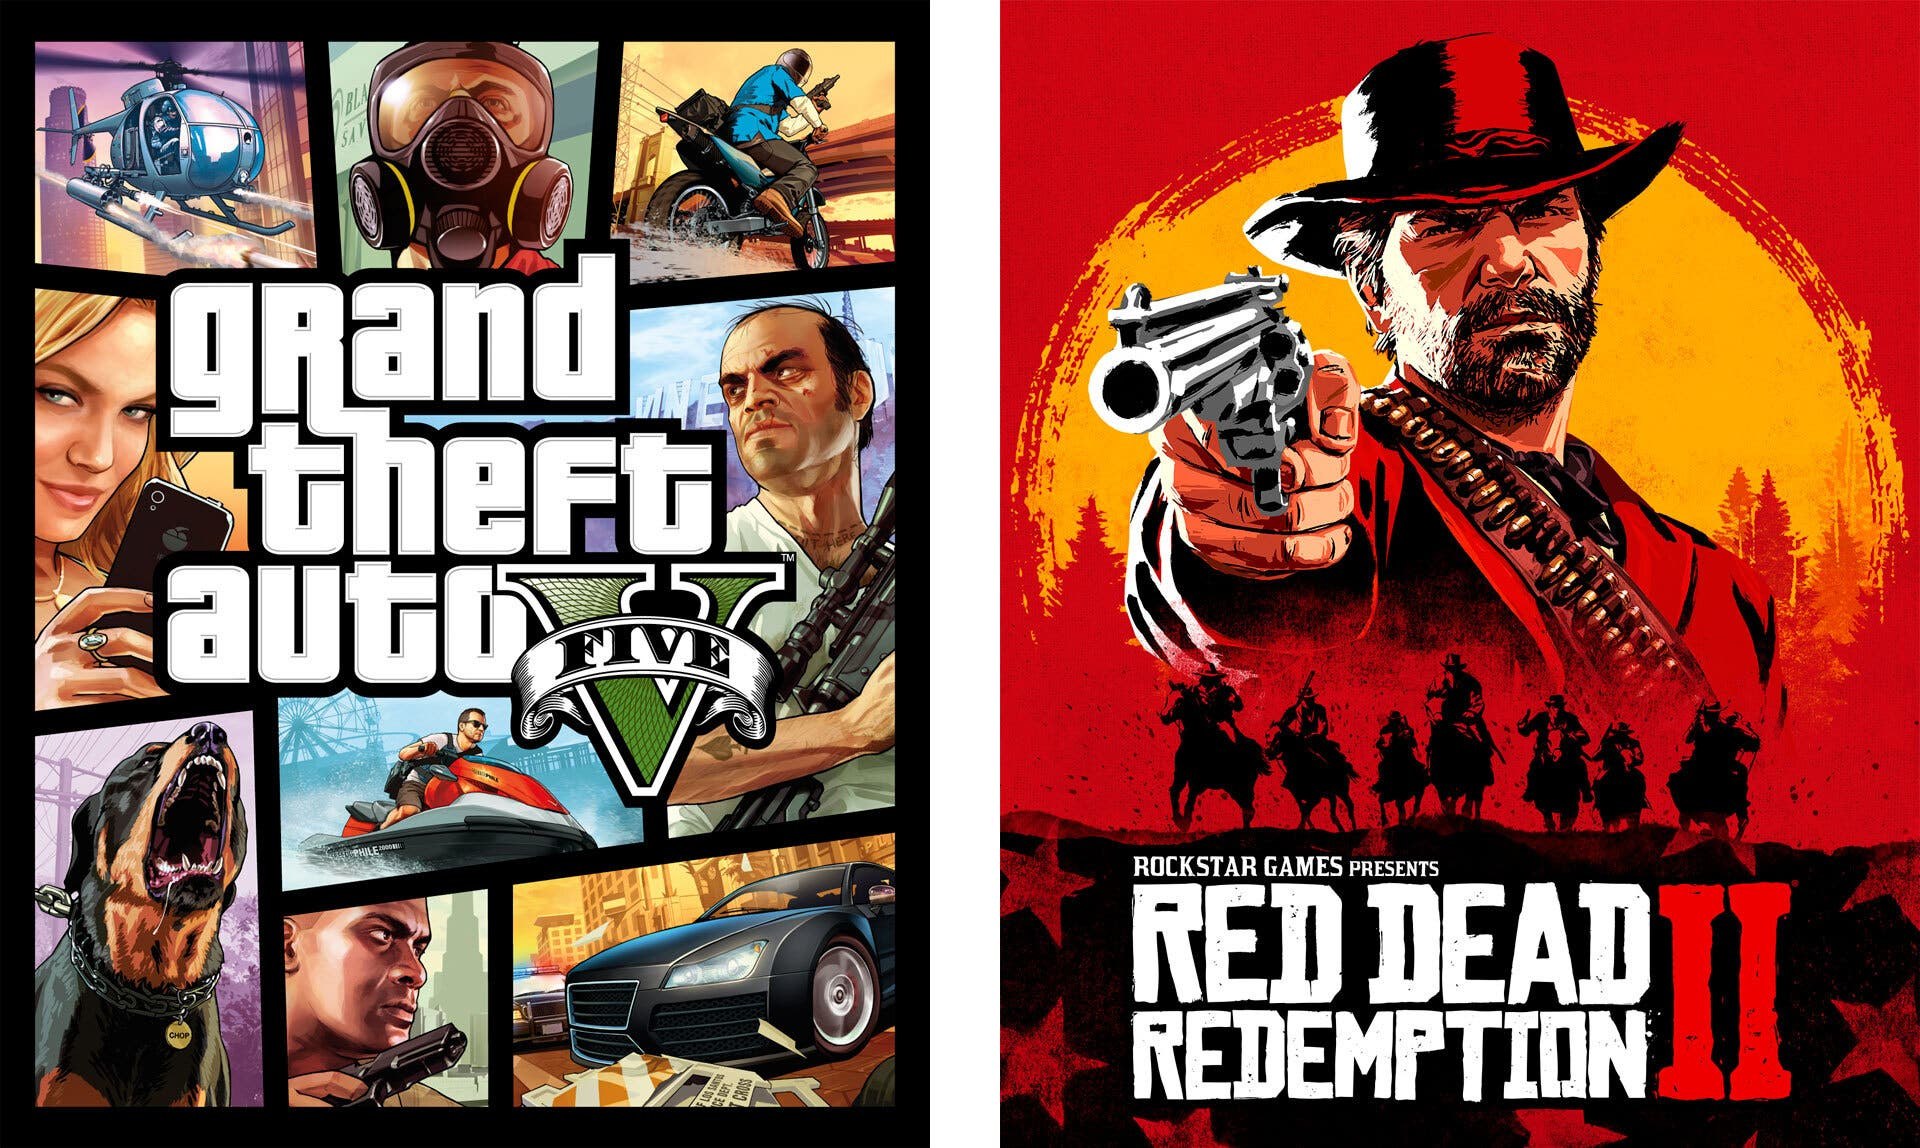 Grand Theft Auto V Red Dead Redemption 2 11 6 2020